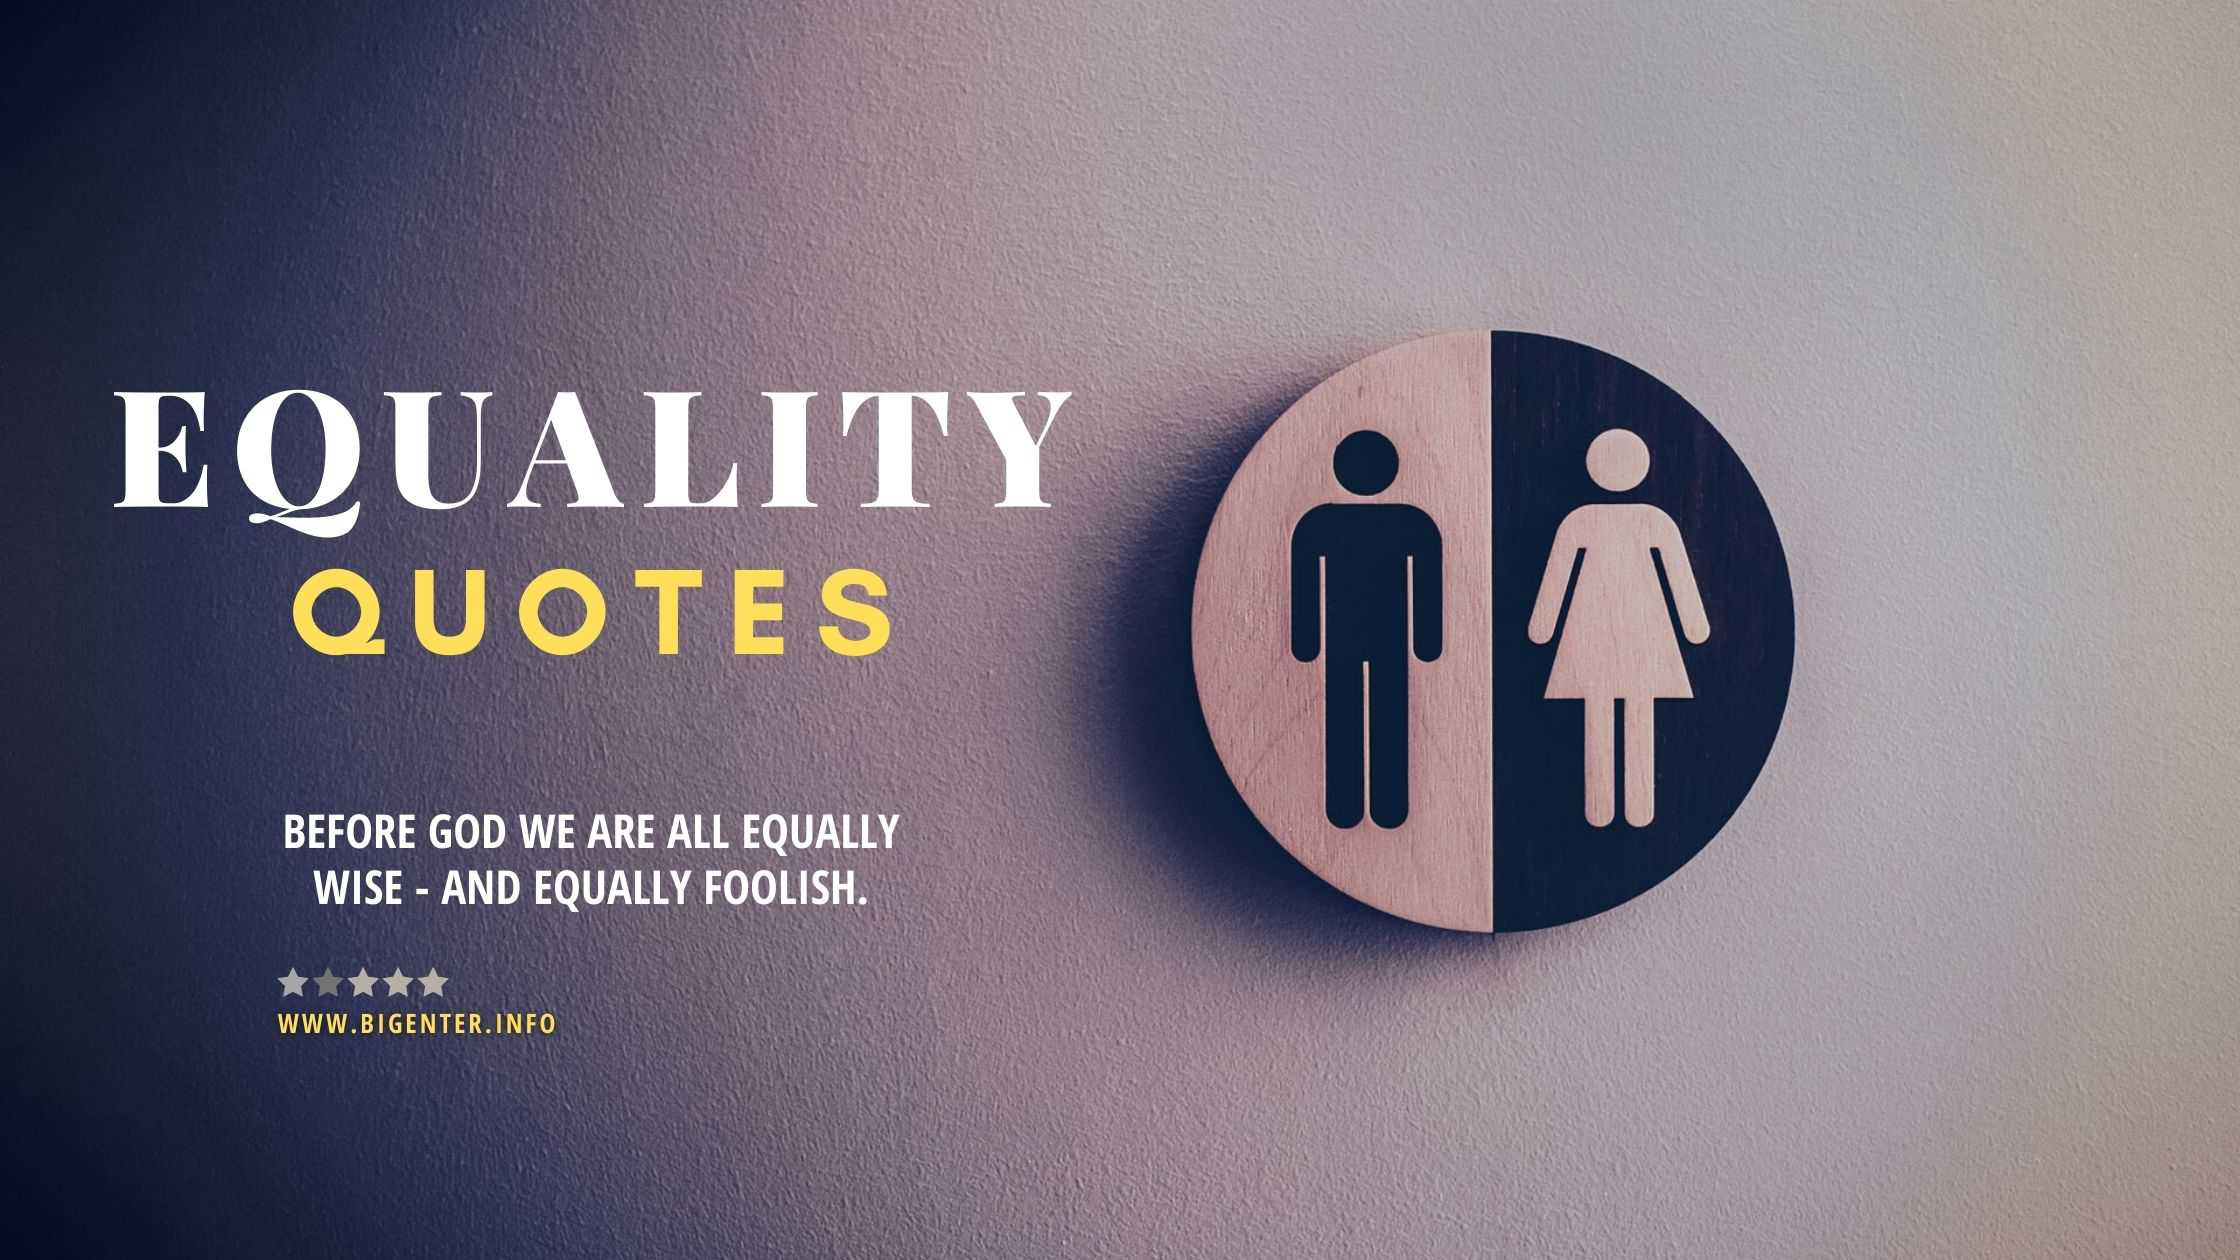 Quotes for Equality